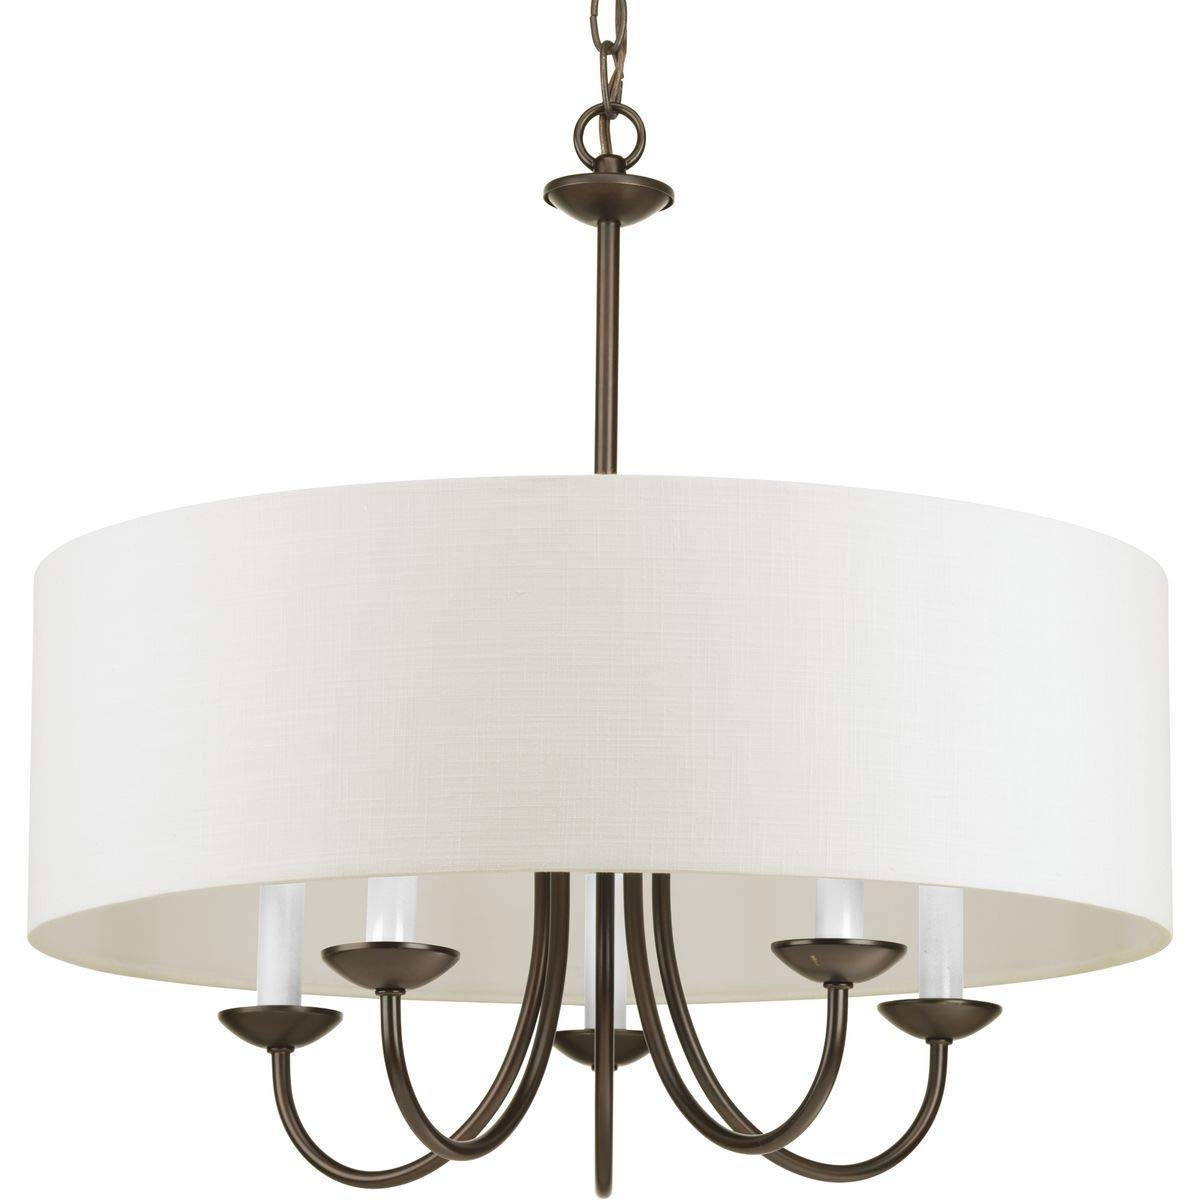 Progress Lighting P4217-20 5-Lt. Chain Hung Fixture Off-white linen fabric shade